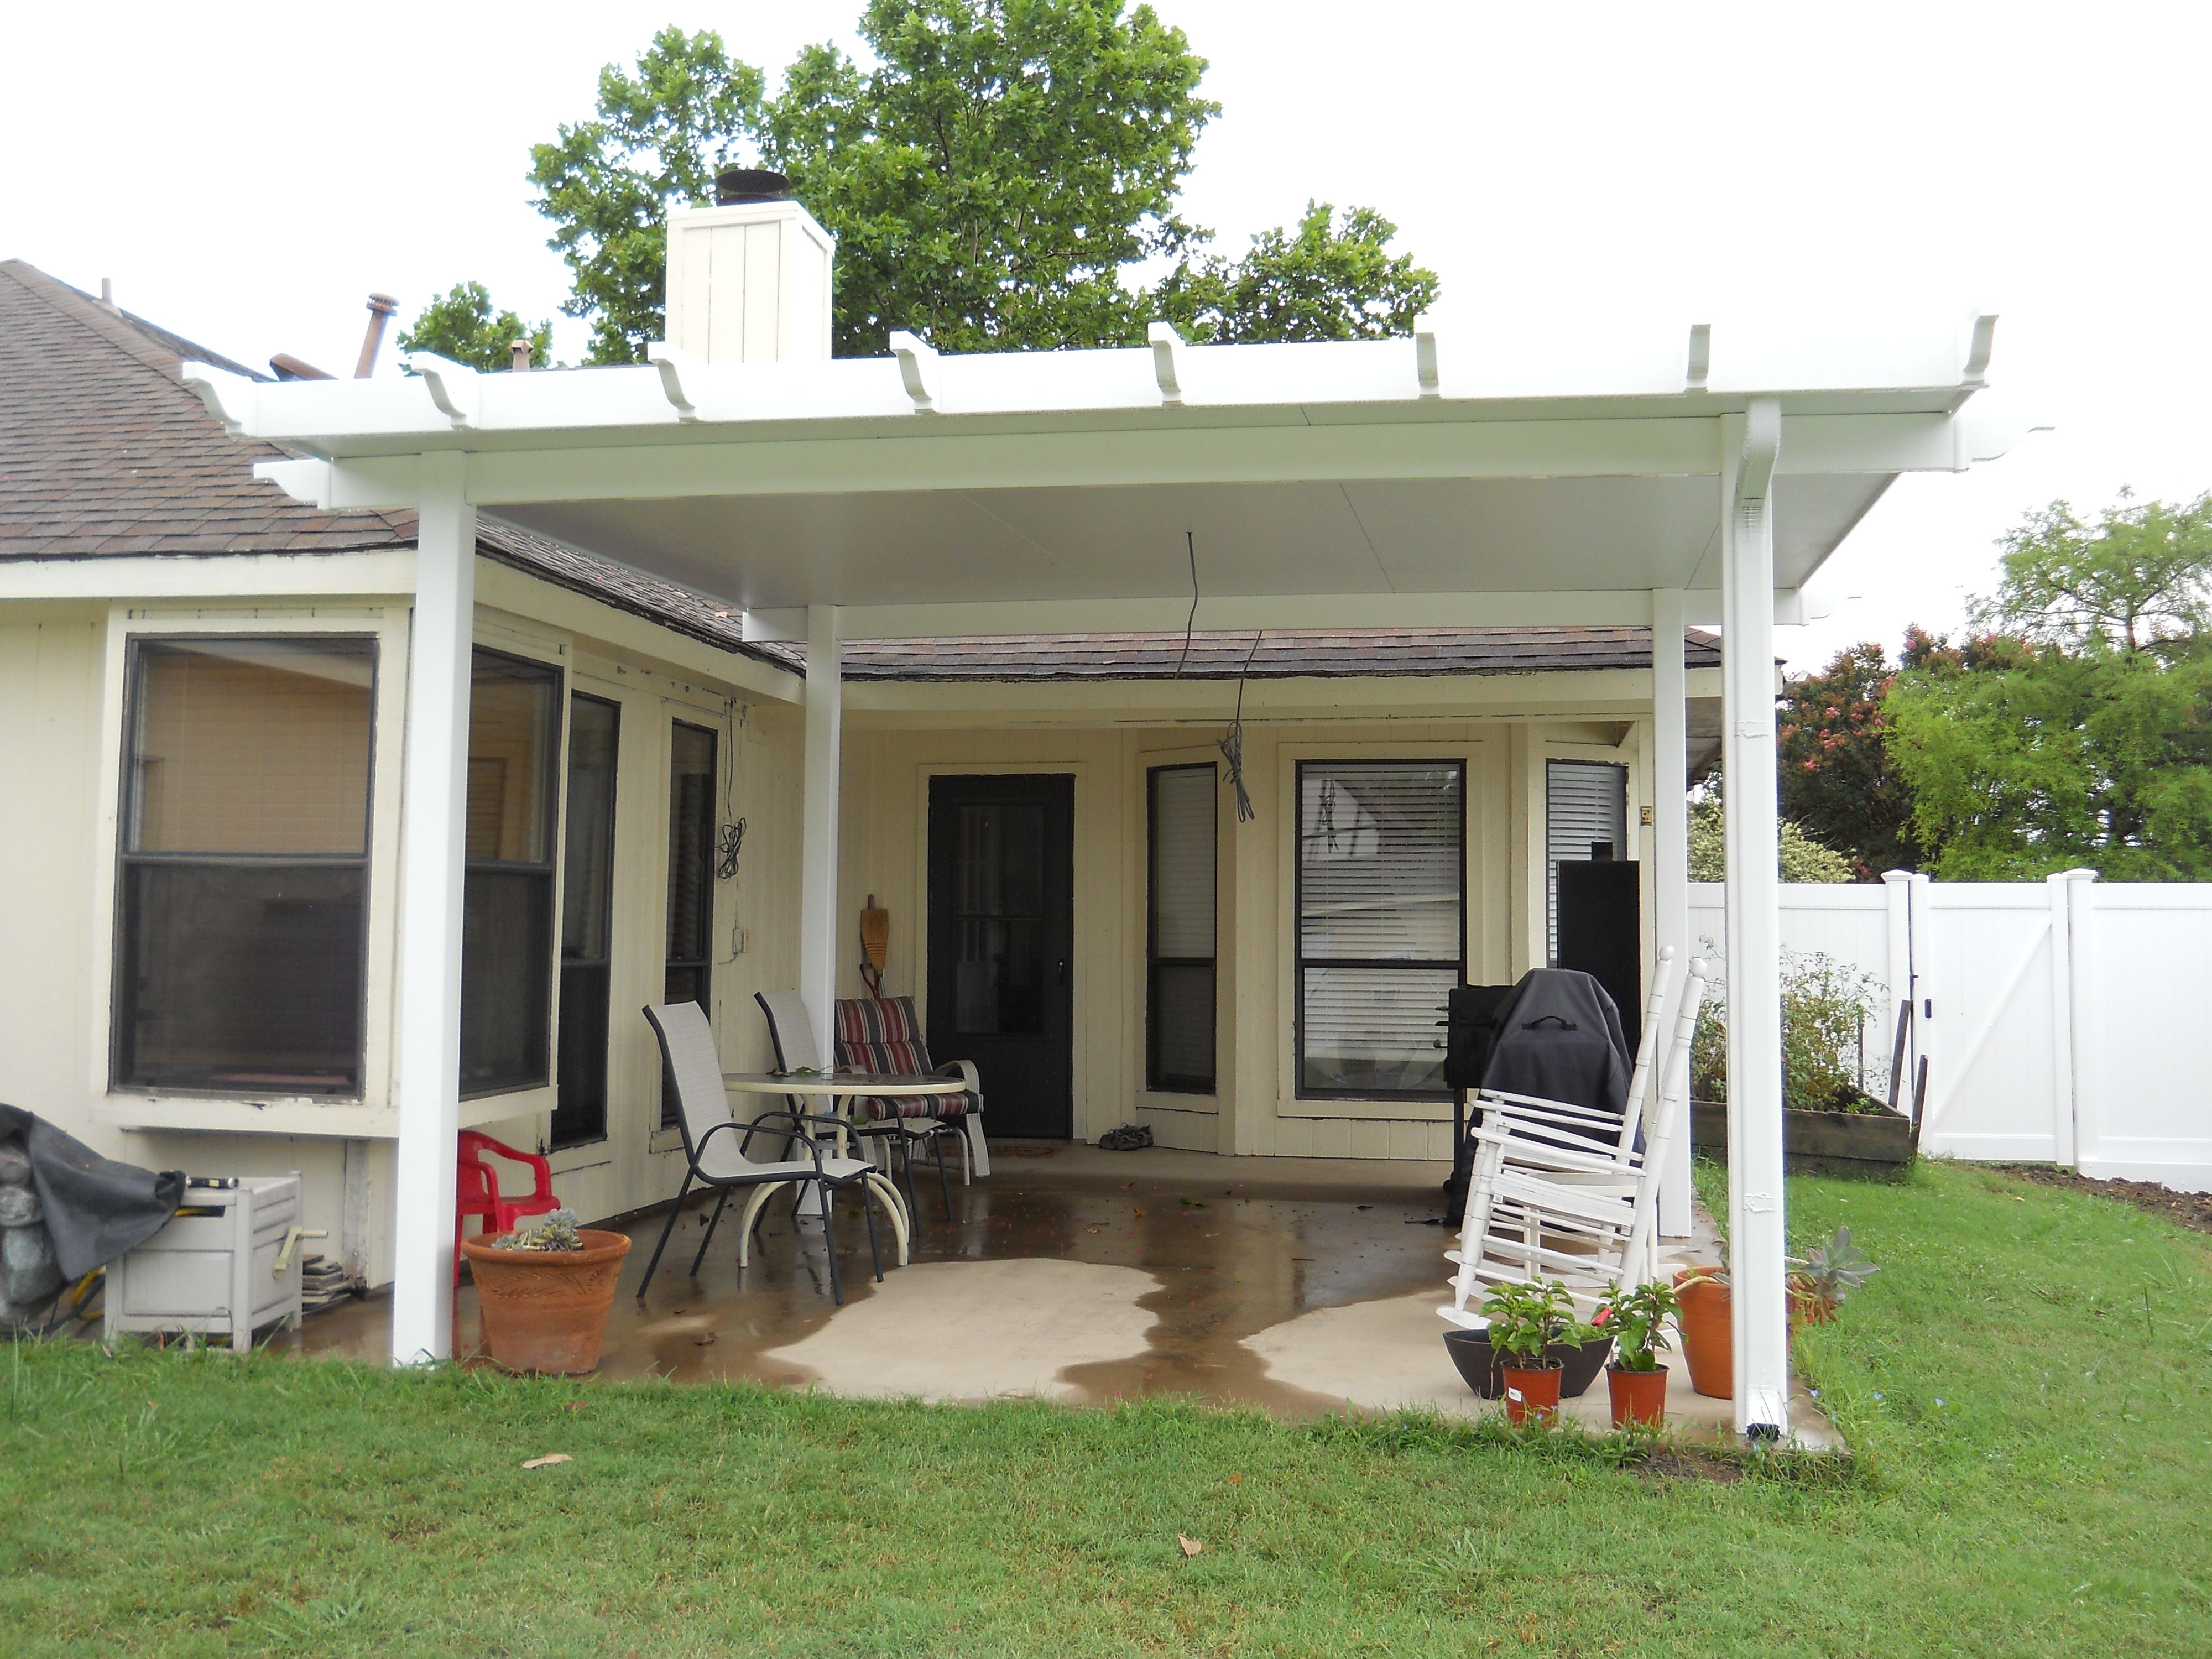 ... Patio Covers Using Vinyl Posts, Rails And Beams. It Makes A Sturdy  Structure That Will Not Dent Or Scratch. Call Future Outdoors For A Free  Estimate.